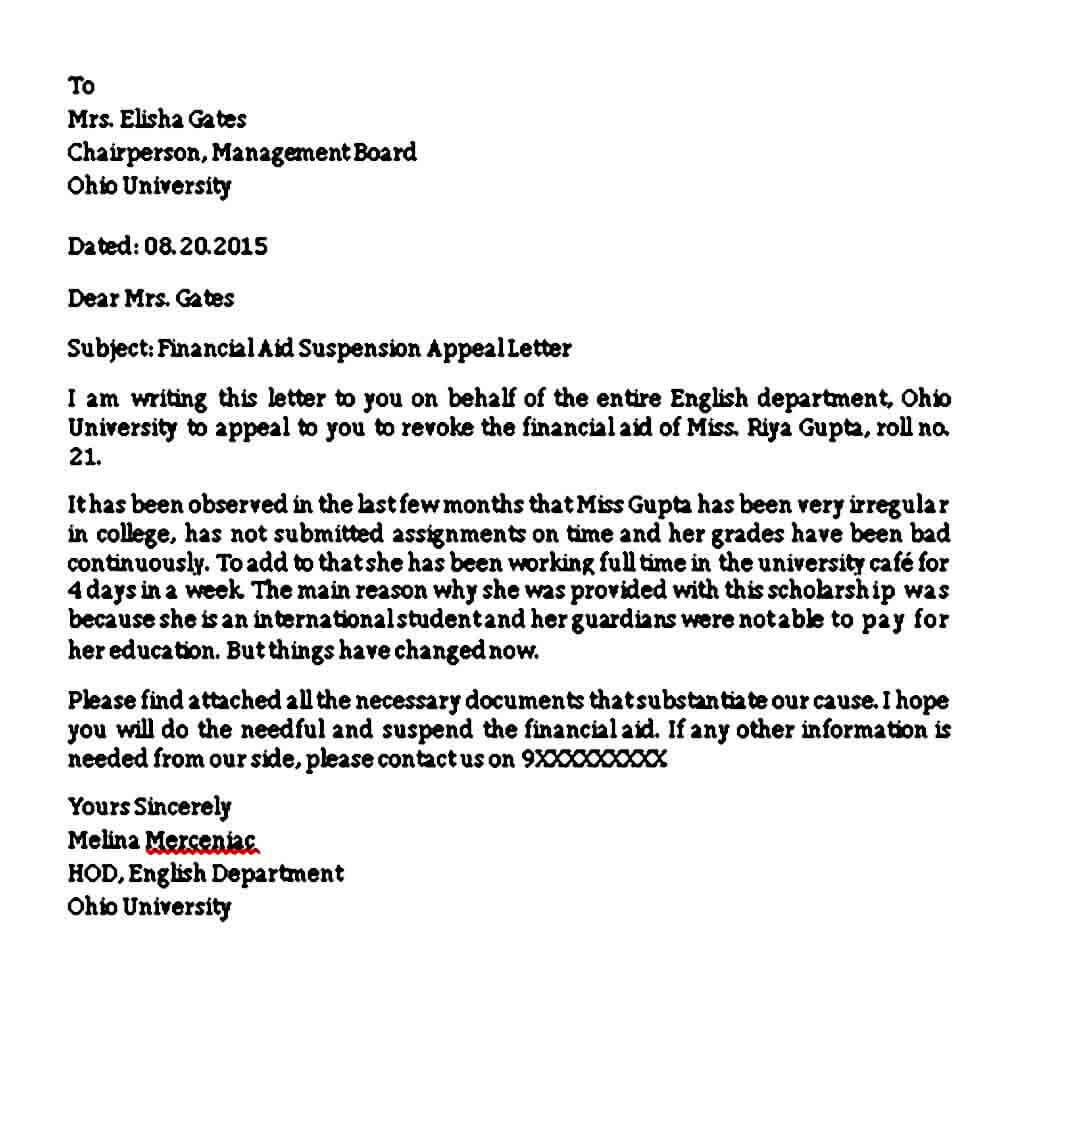 Academic Appeal Letter Example from moussyusa.com